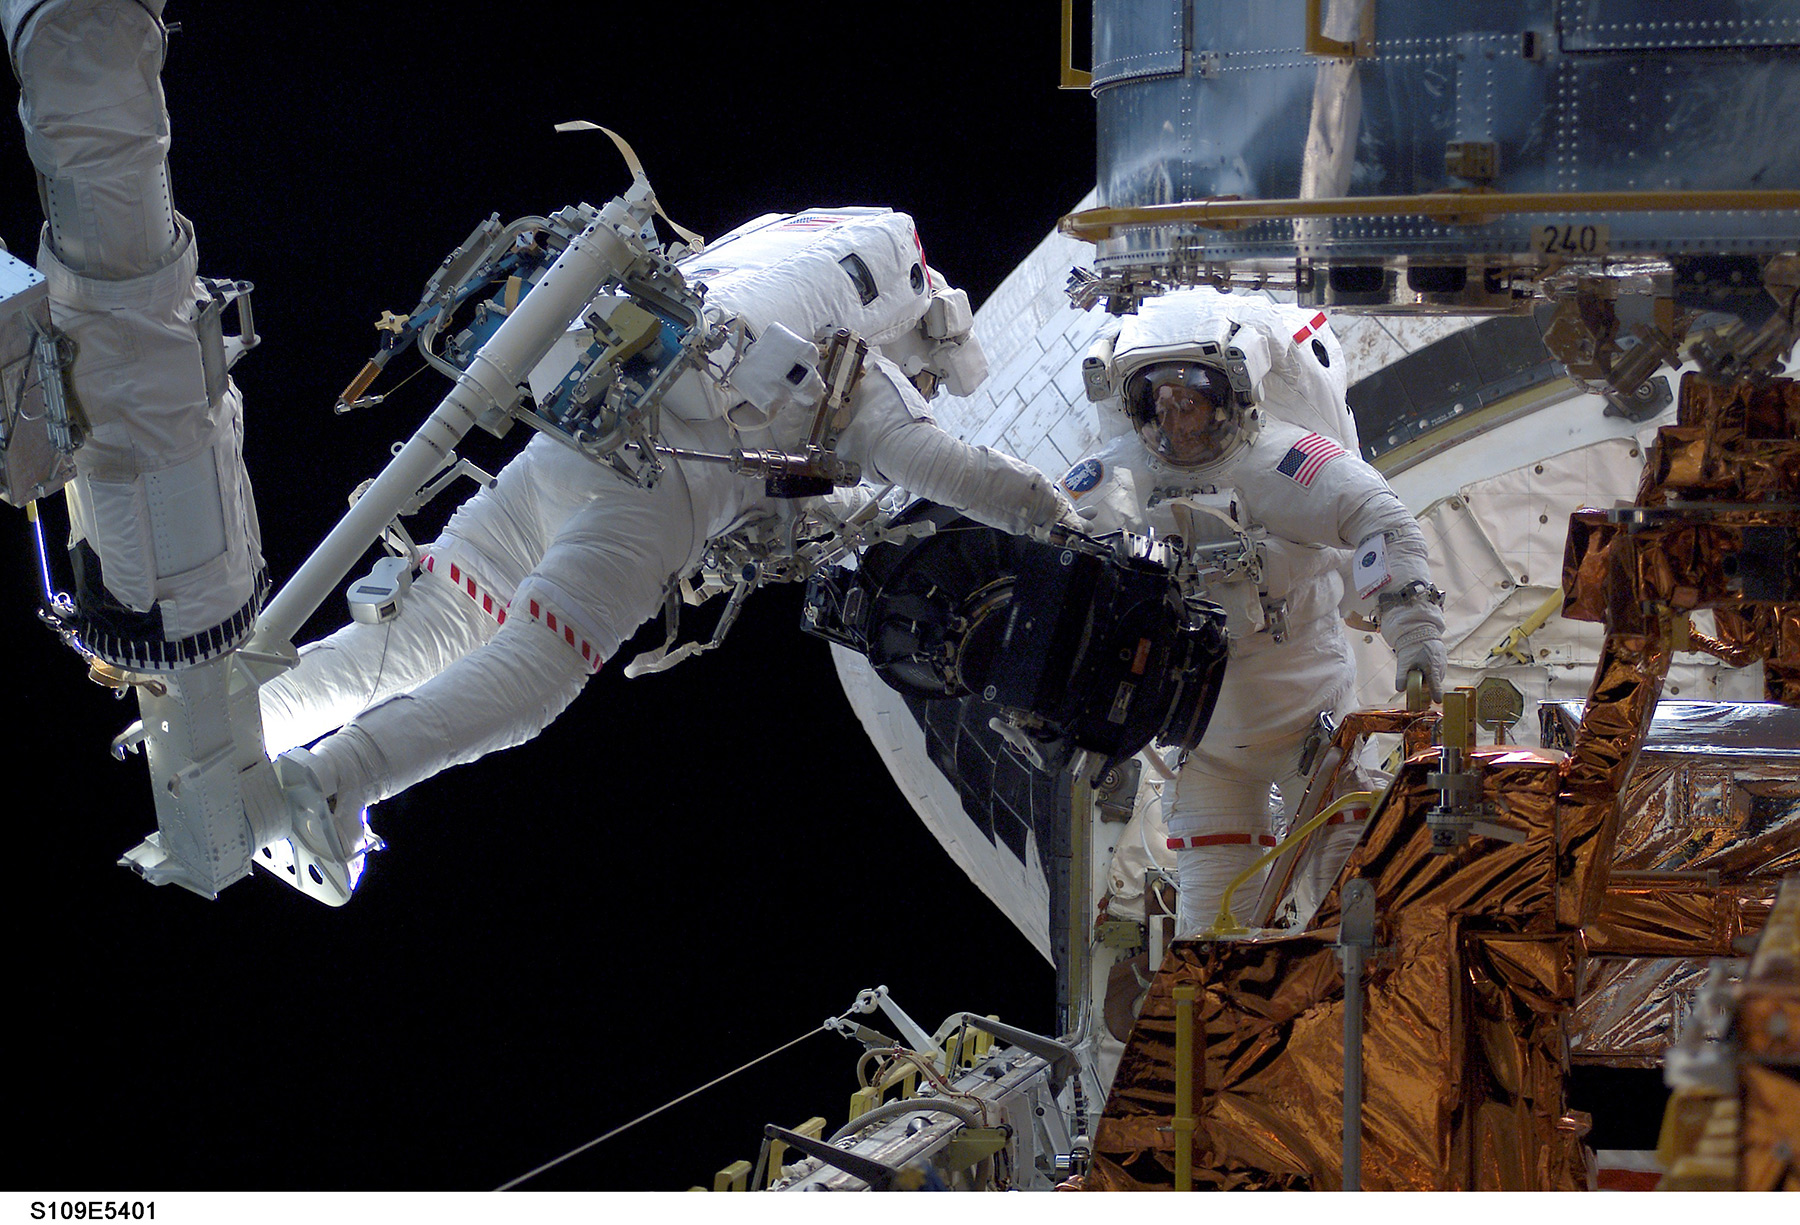 Two astronauts work in the payload bay of a space shuttle